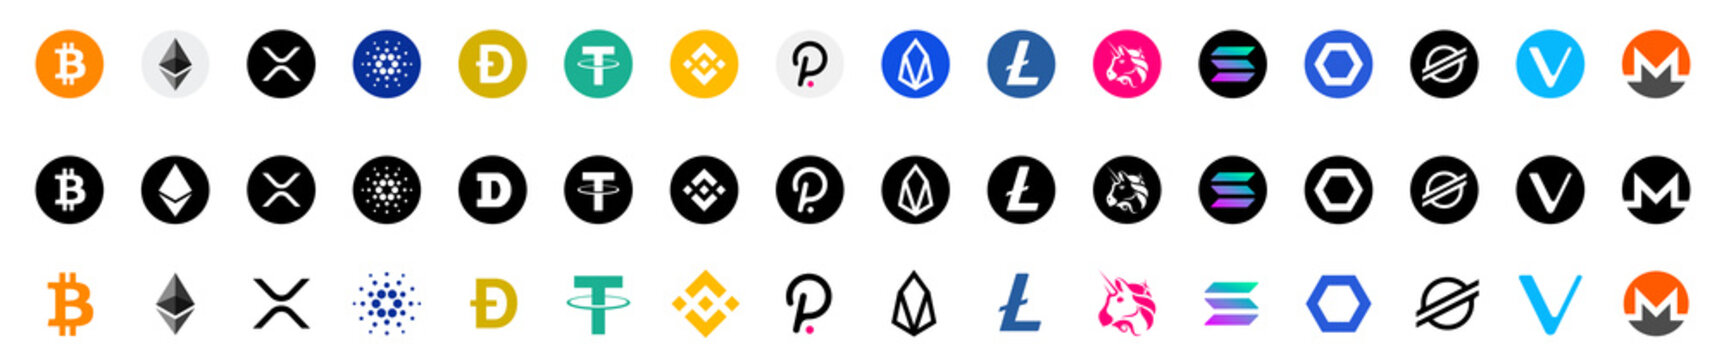 Cryptocurrency tokens icon set. Cryptocurrencies or crypto logos. Collection top cryptocurrency: Bitcoin, Ethereum, Dogecoin, Tether, Cardano, XRP and other. Flet style - stock vector editorial.